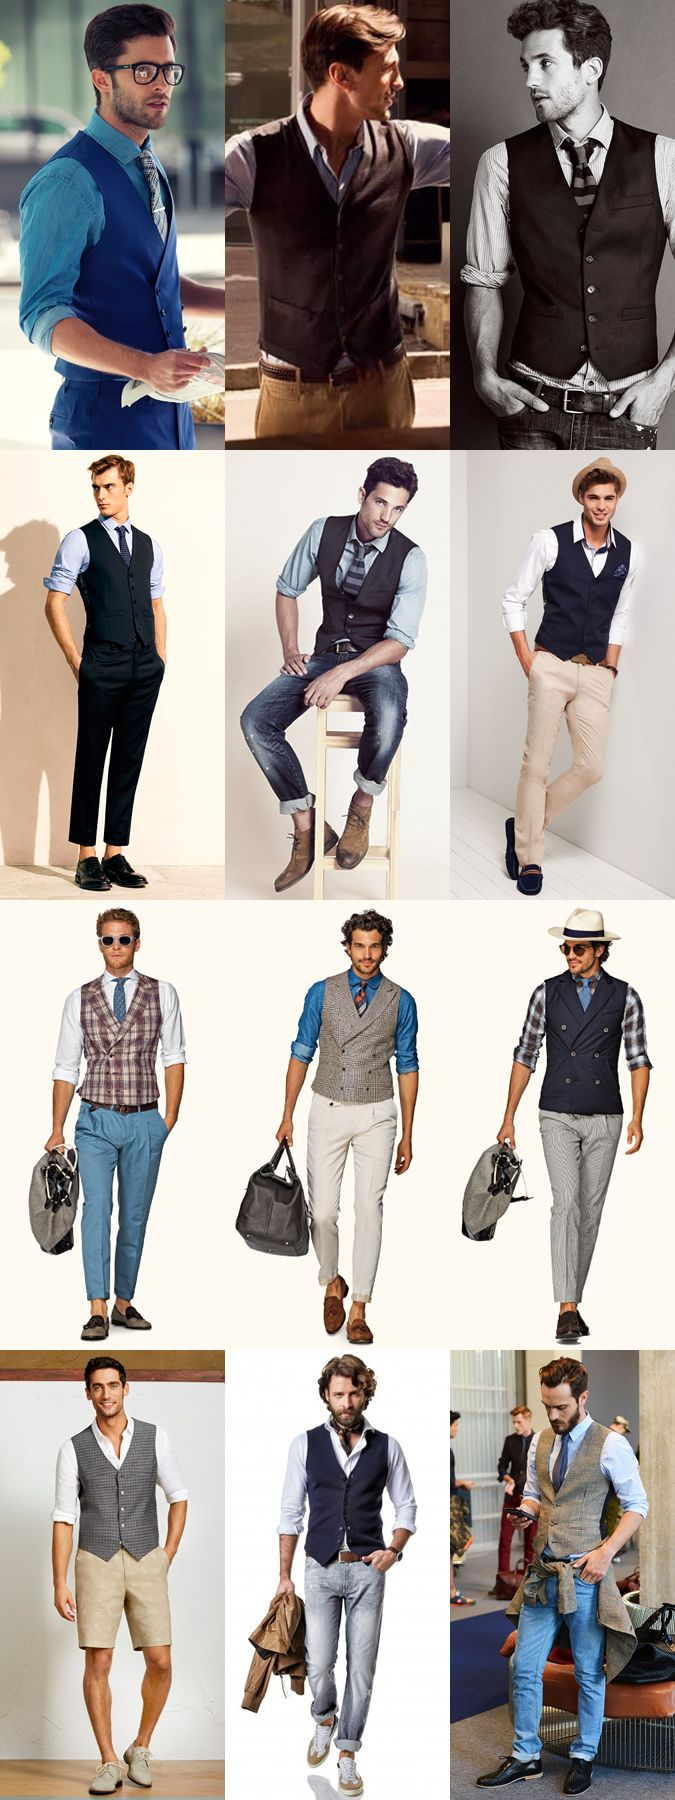 mens waistcoat vest outfit ideas for the summer